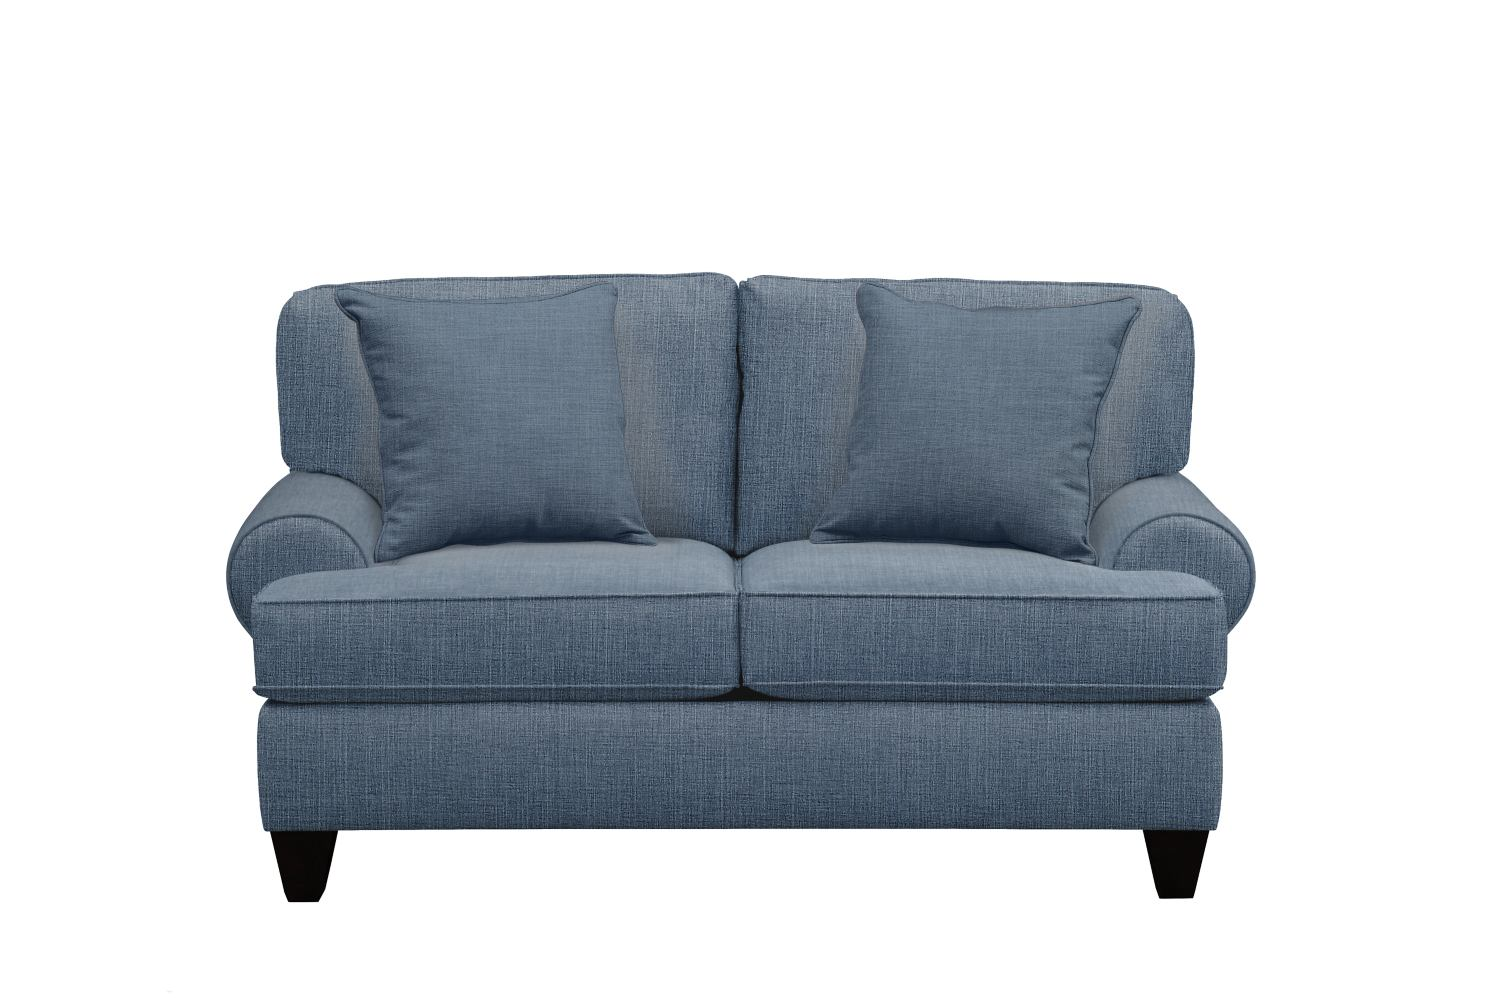 "Living Room Furniture - Bailey Roll Arm Sofa 67"" Milford II Indigo  w/ Milford II Indigo Pillow"